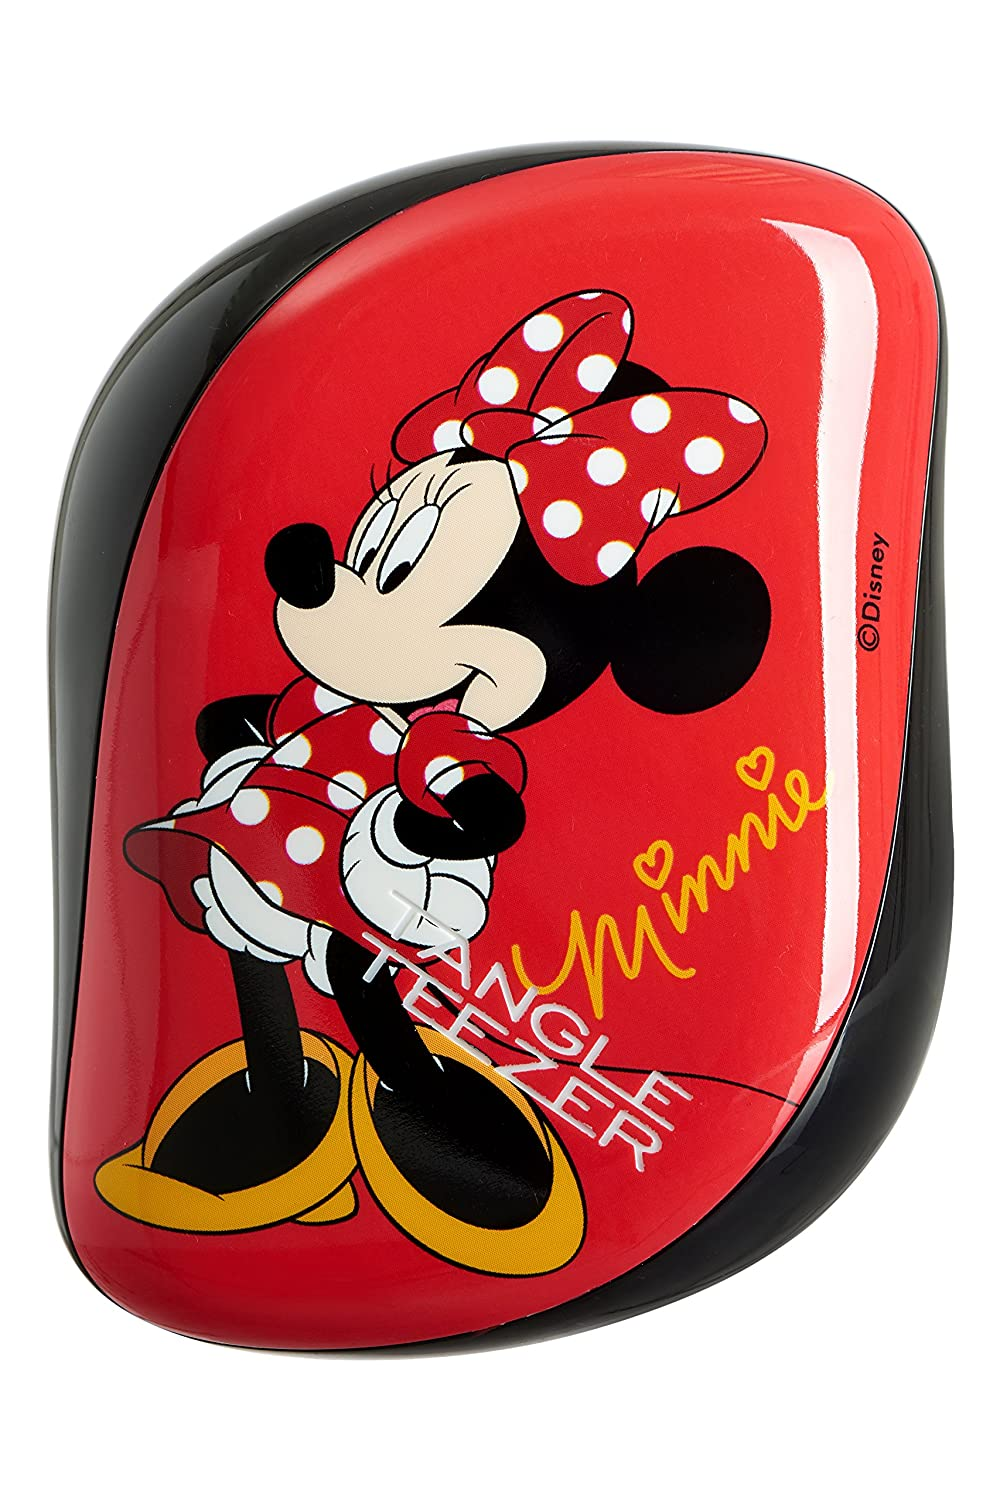 Tangle Teezer Compact Styler, Disney Minnie Mouse, Rosey Red CS-MMRED-010318